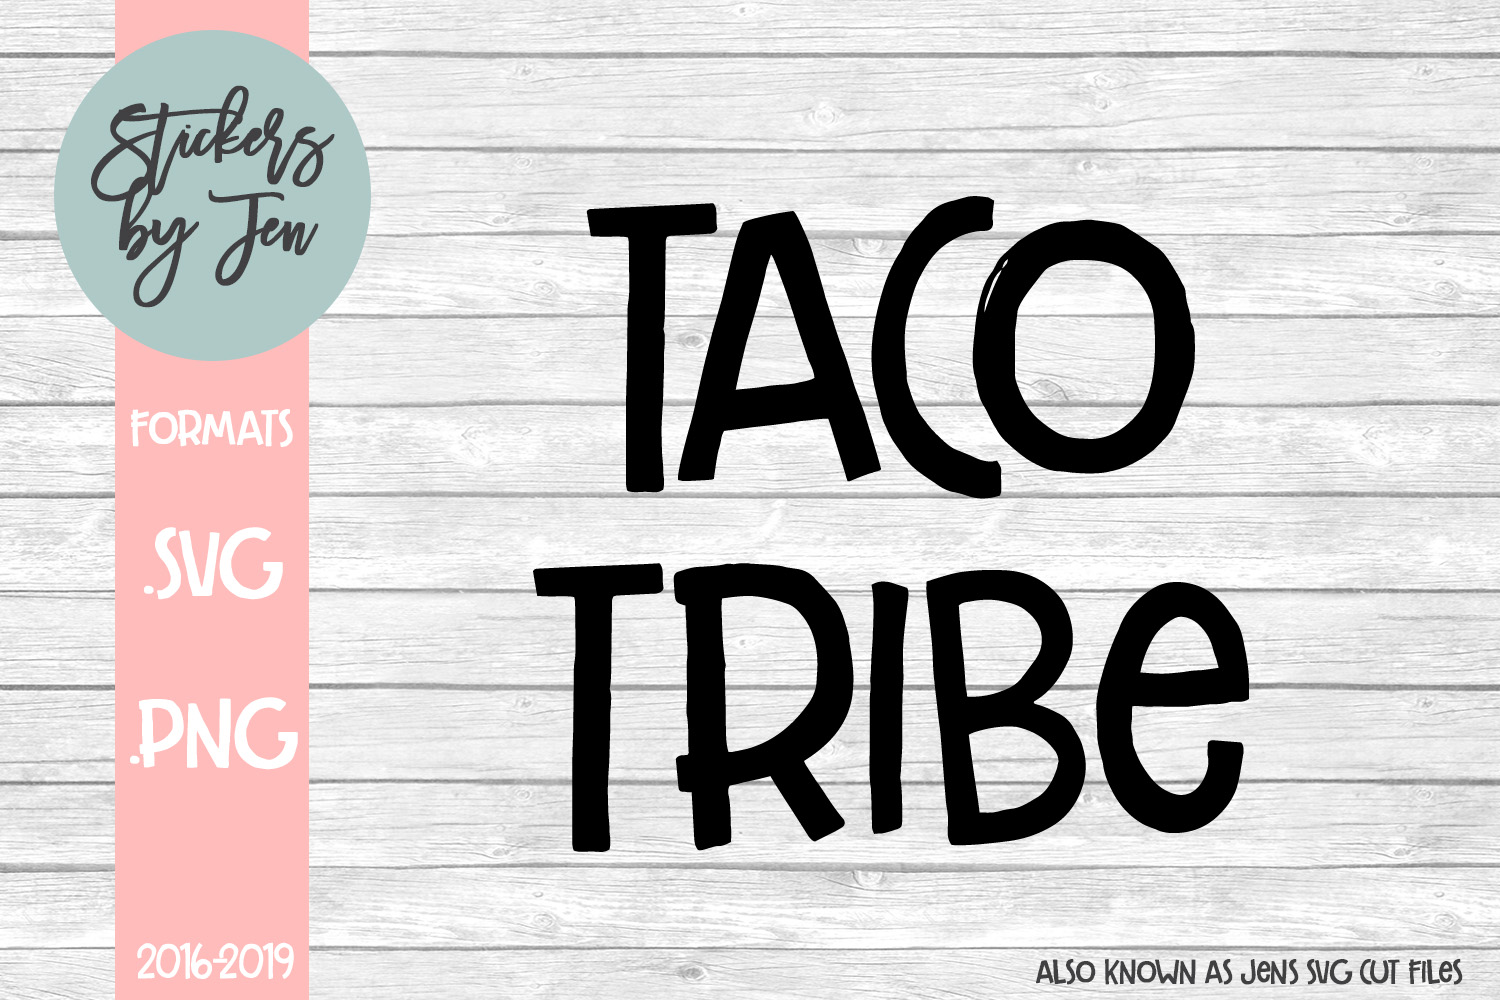 Download Free Taco Tribe Graphic By Stickers By Jennifer Creative Fabrica for Cricut Explore, Silhouette and other cutting machines.